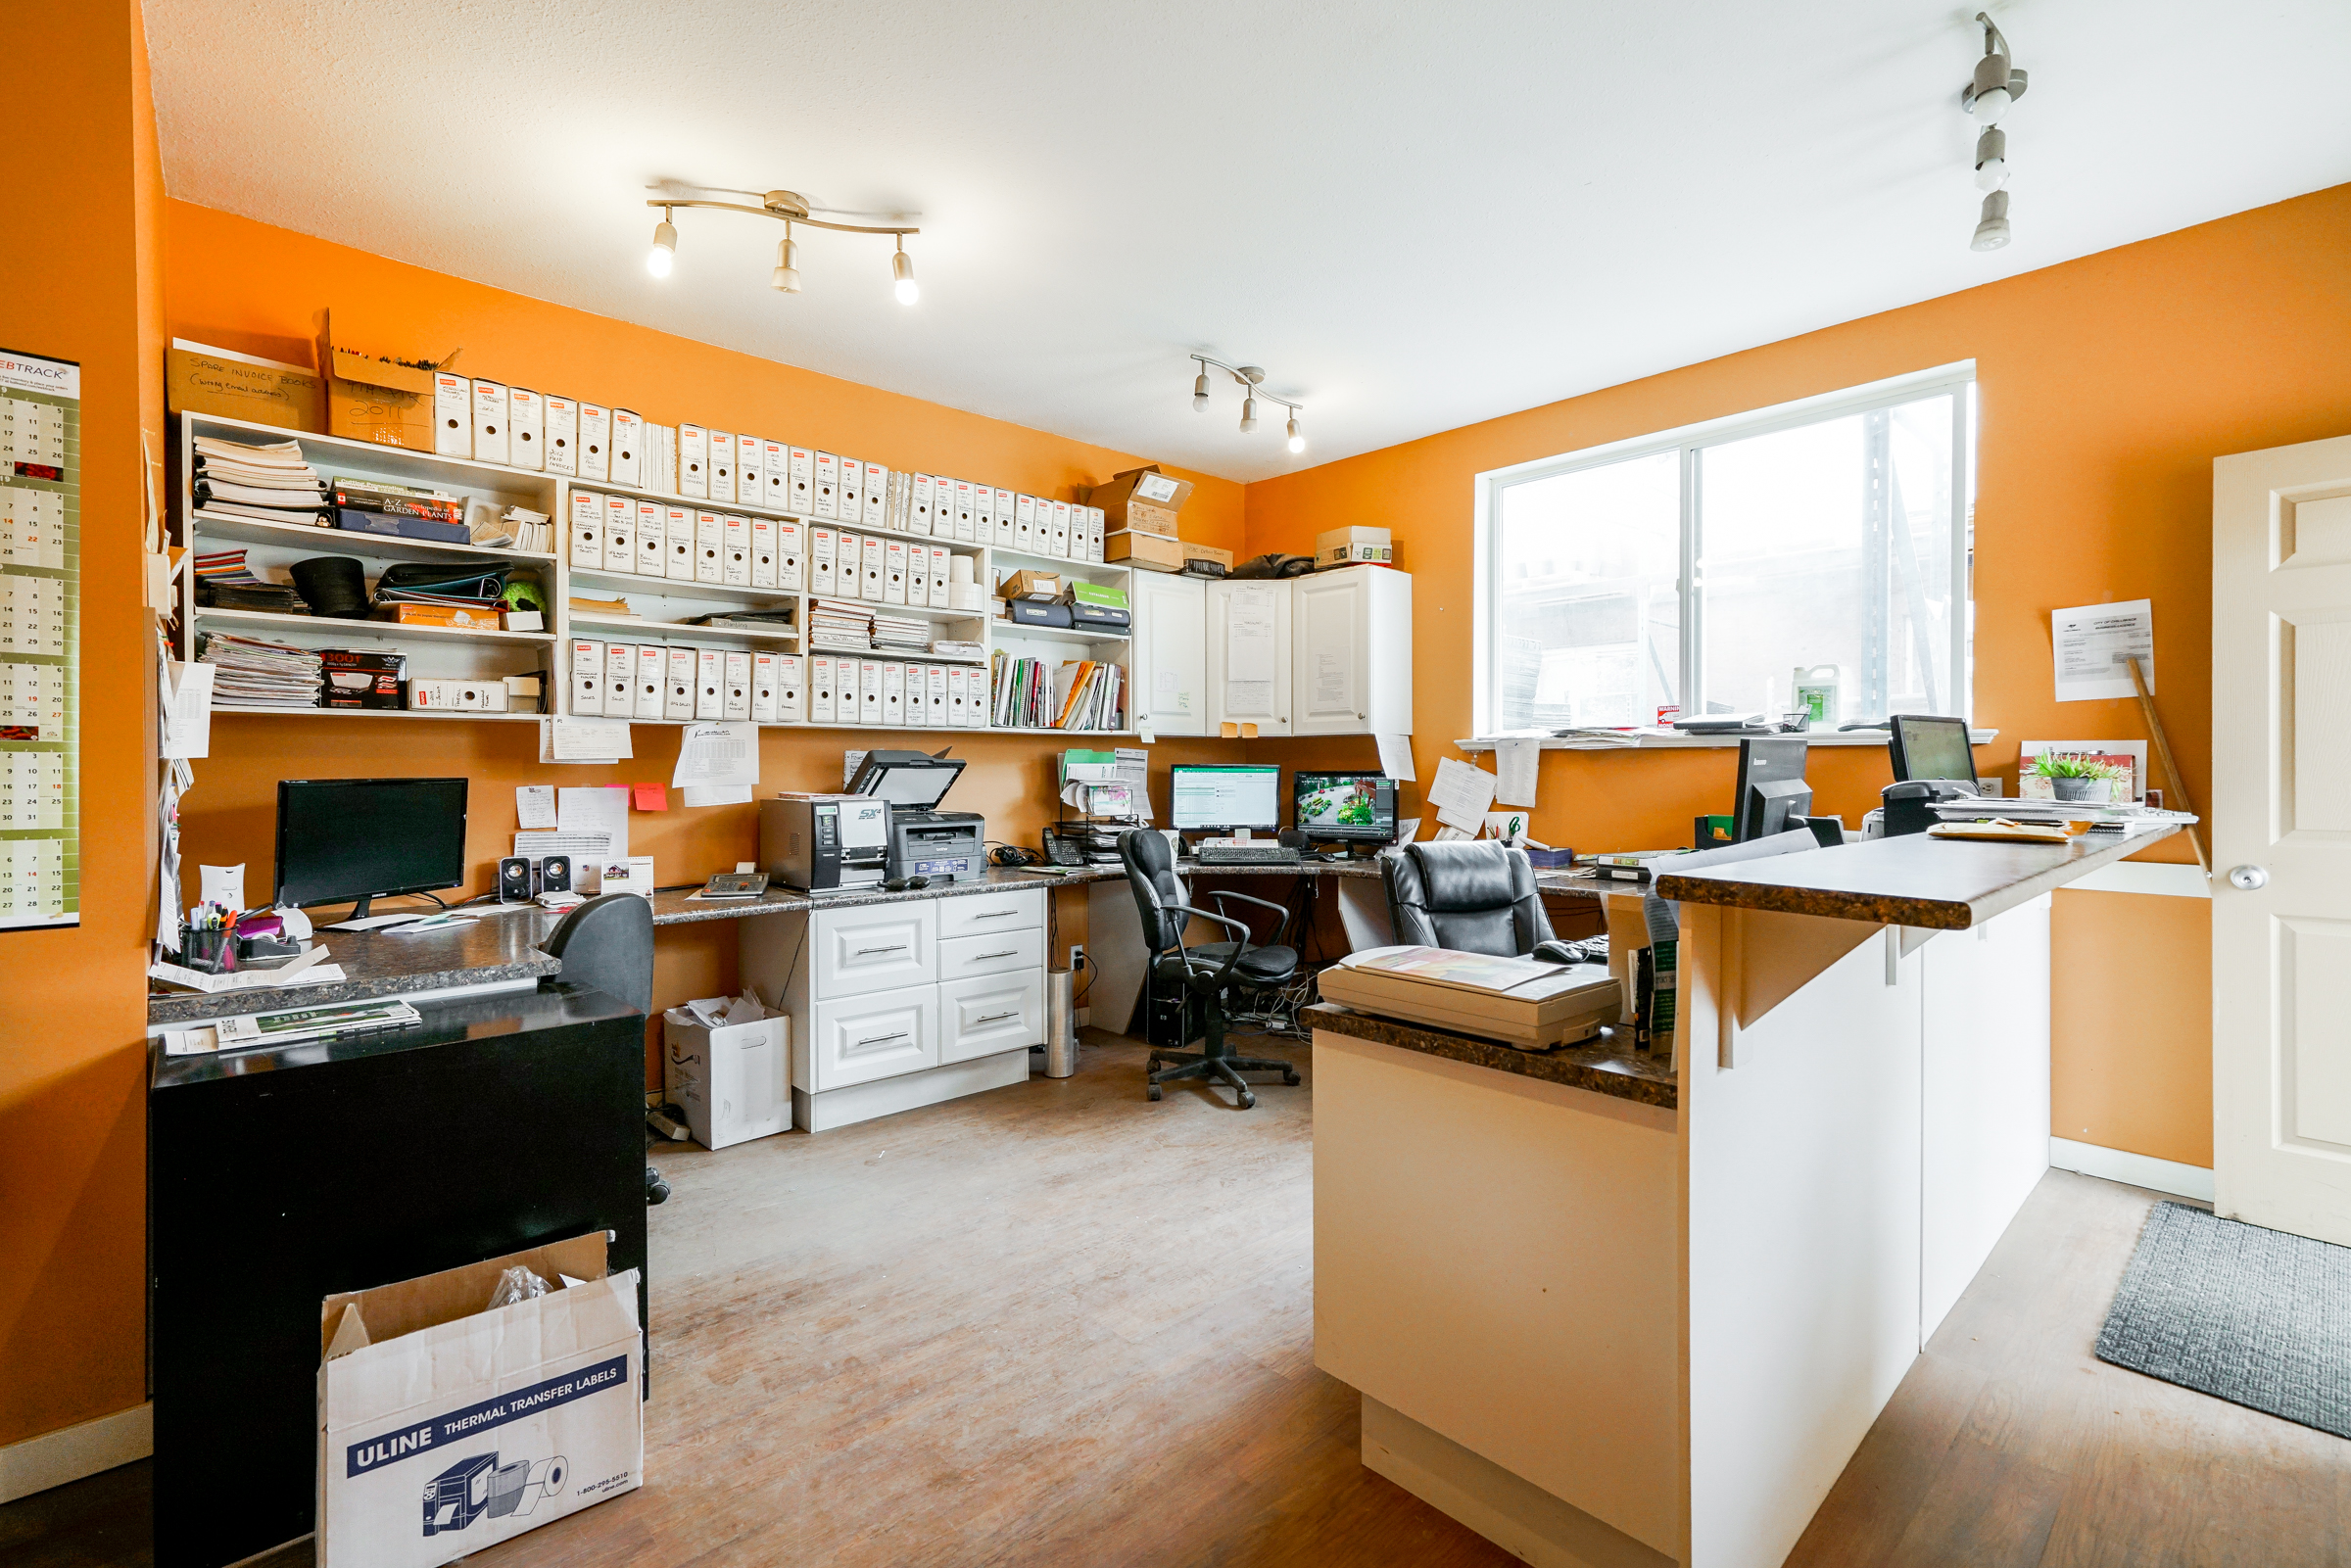 50318 CAMP RIVER ROAD BY Gord Houweling - ONIKON Creative